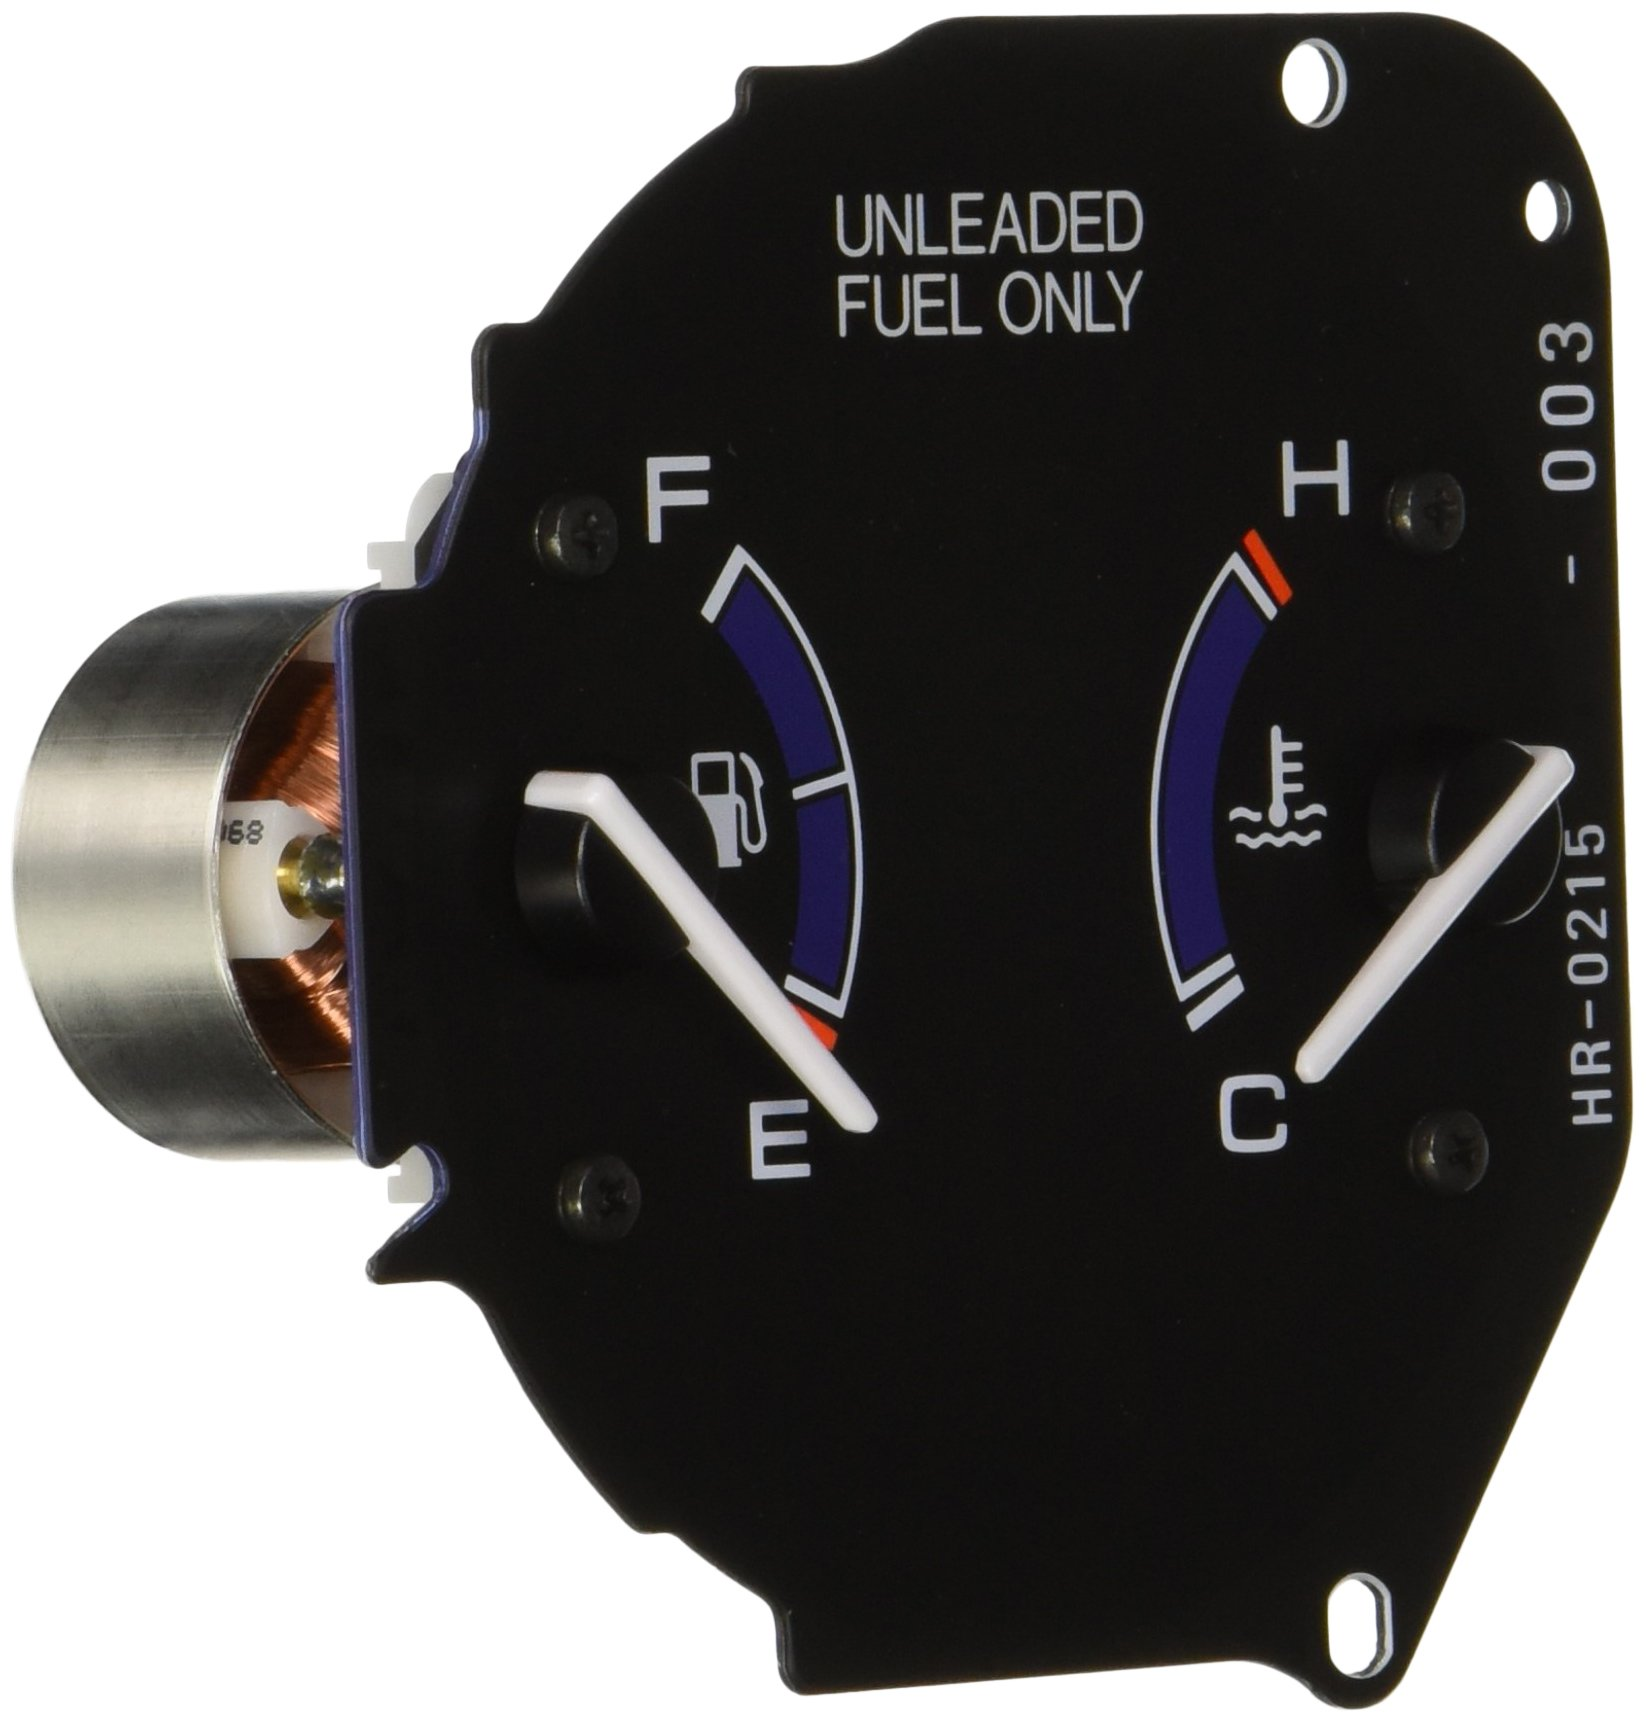 Honda Genuine 78130-S00-A61 Fuel and Temperature Meter Assembly